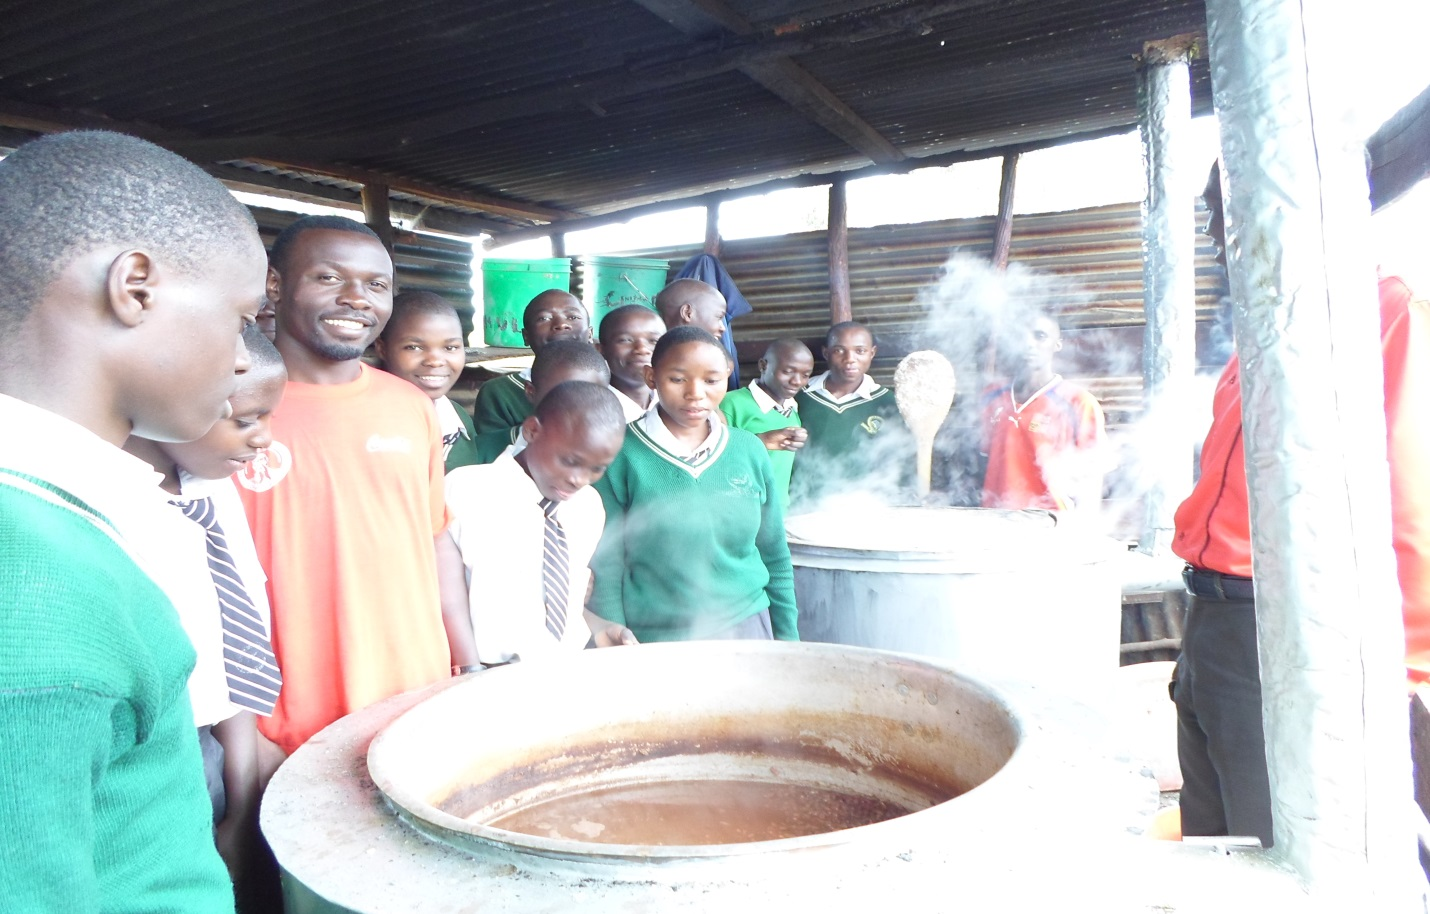 Teachers and Students being happy at the sight of Large Clean Cooking Stoves